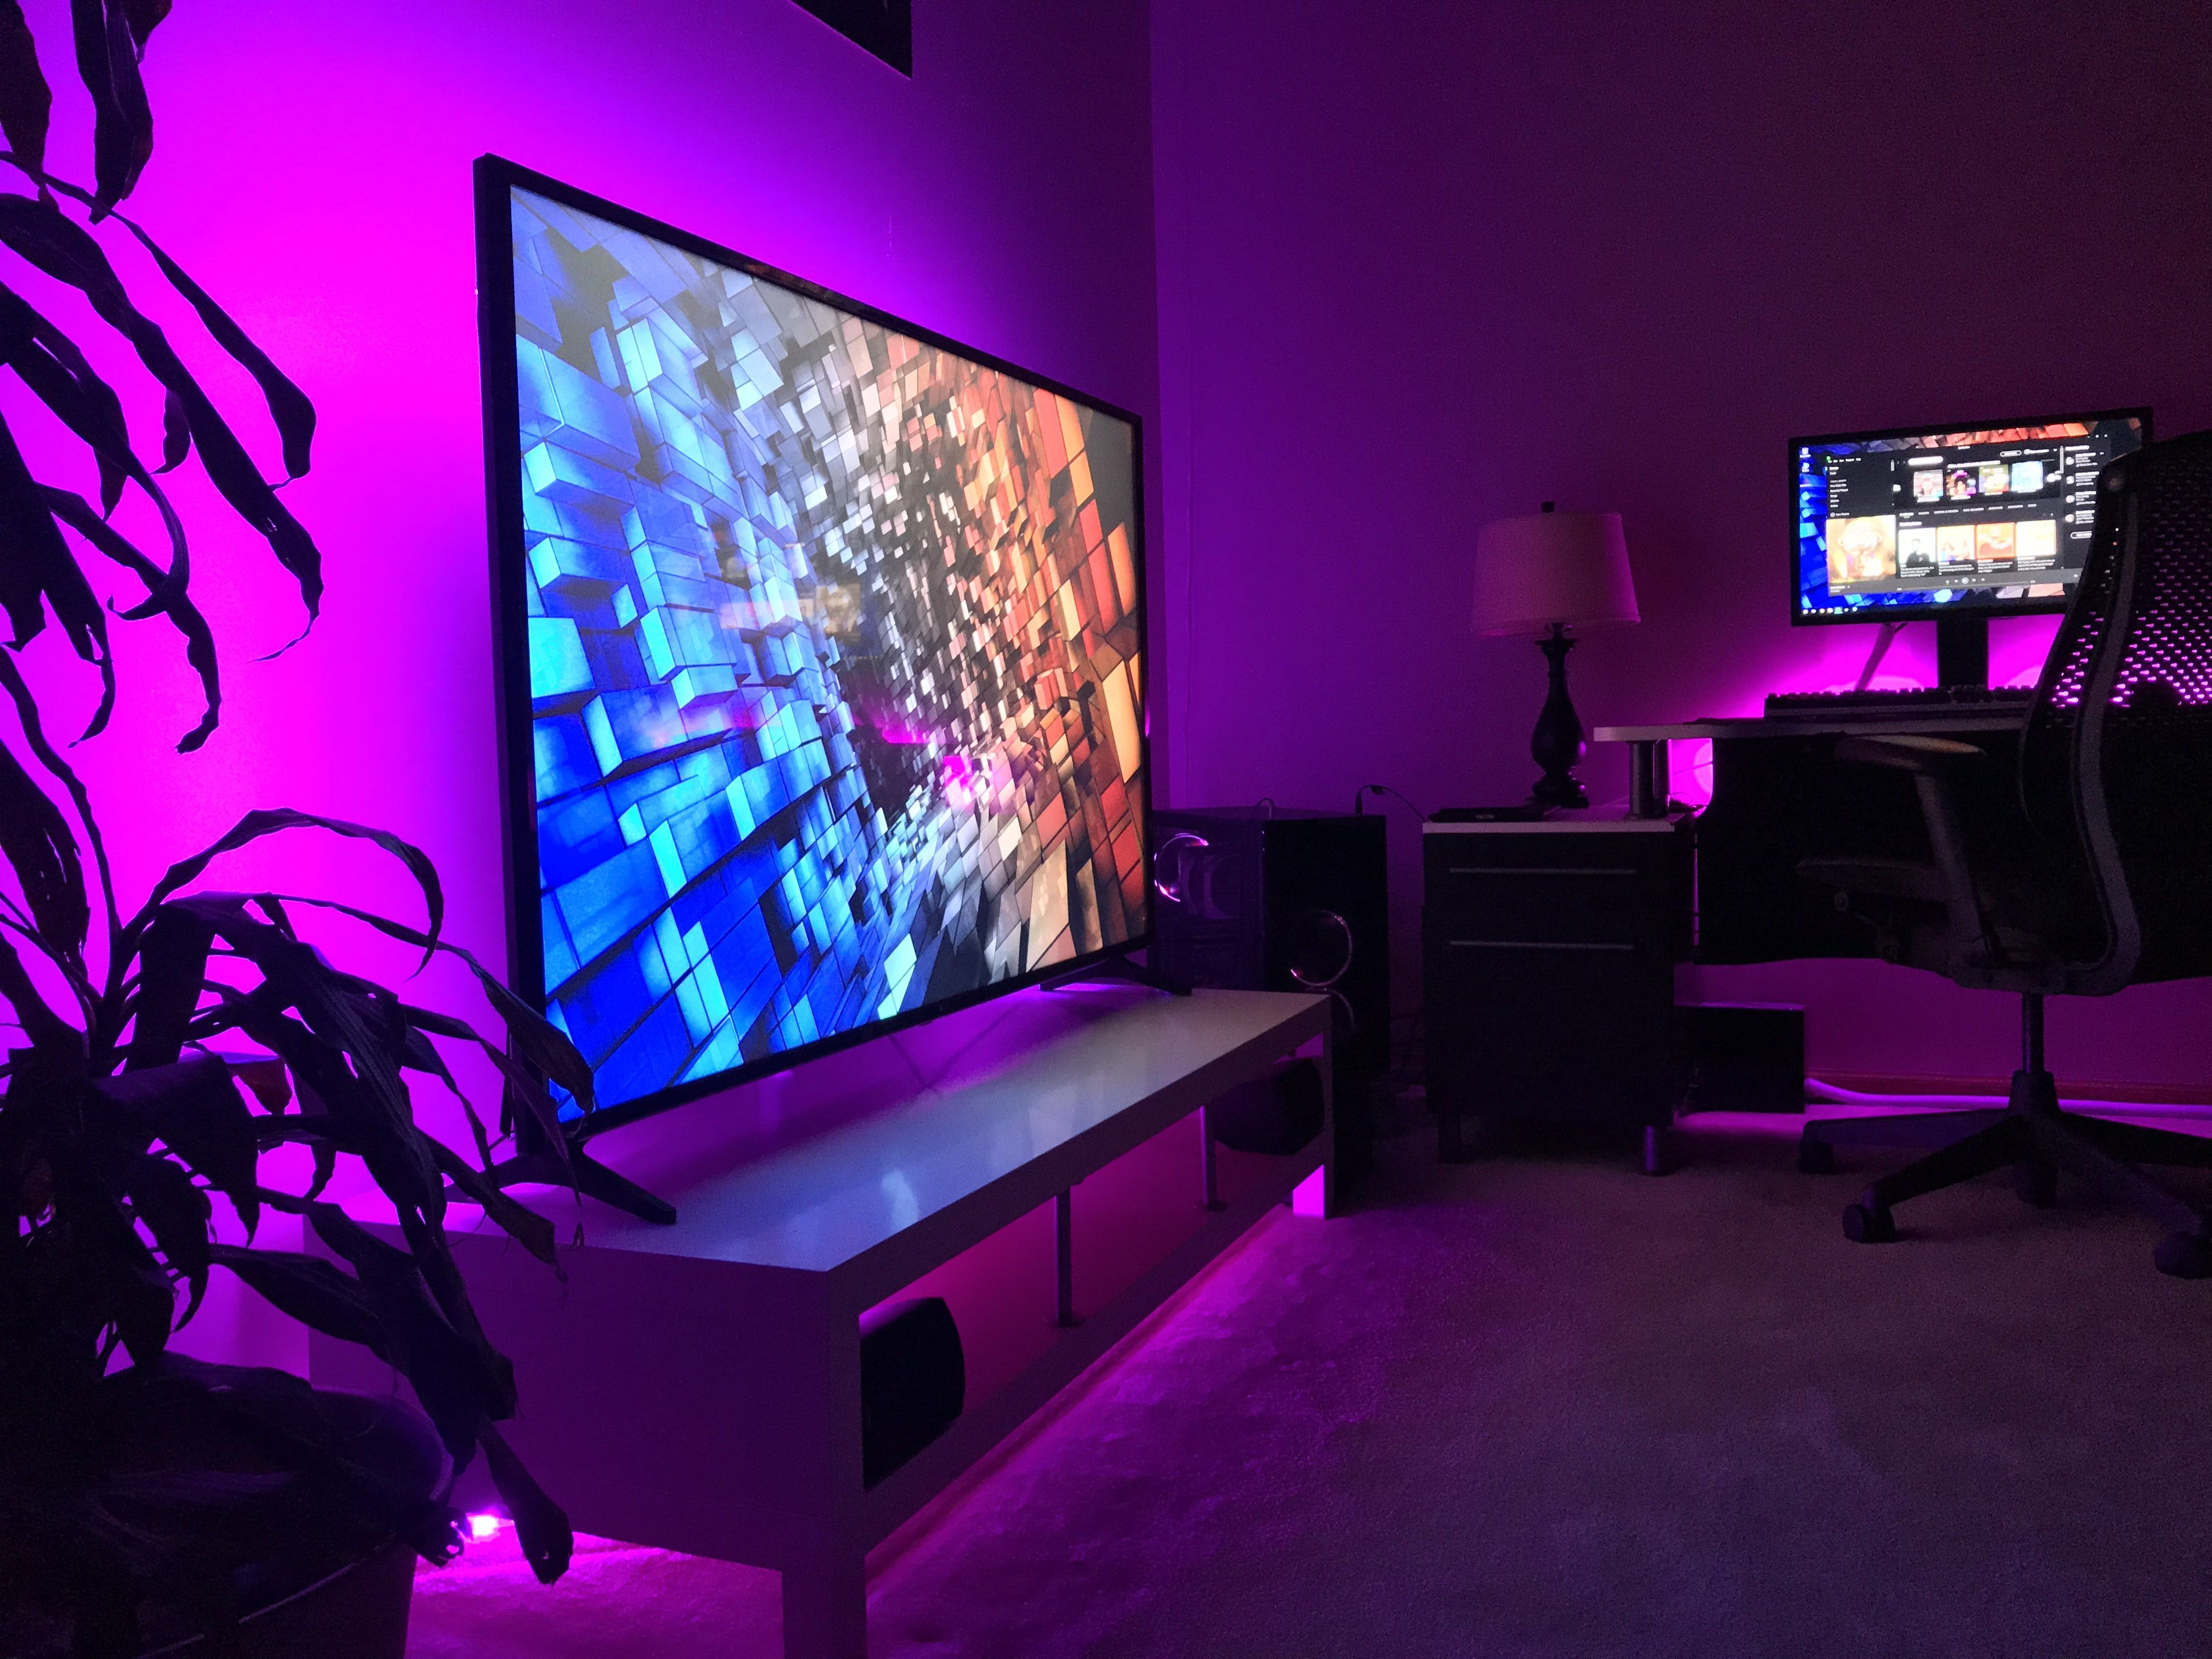 This List Of The Most Advanced Smart And Innovative Video Game Room Ideas Will Guide You To Find A De Video Game Rooms Video Game Room Design Game Room Decor Living room gaming pc